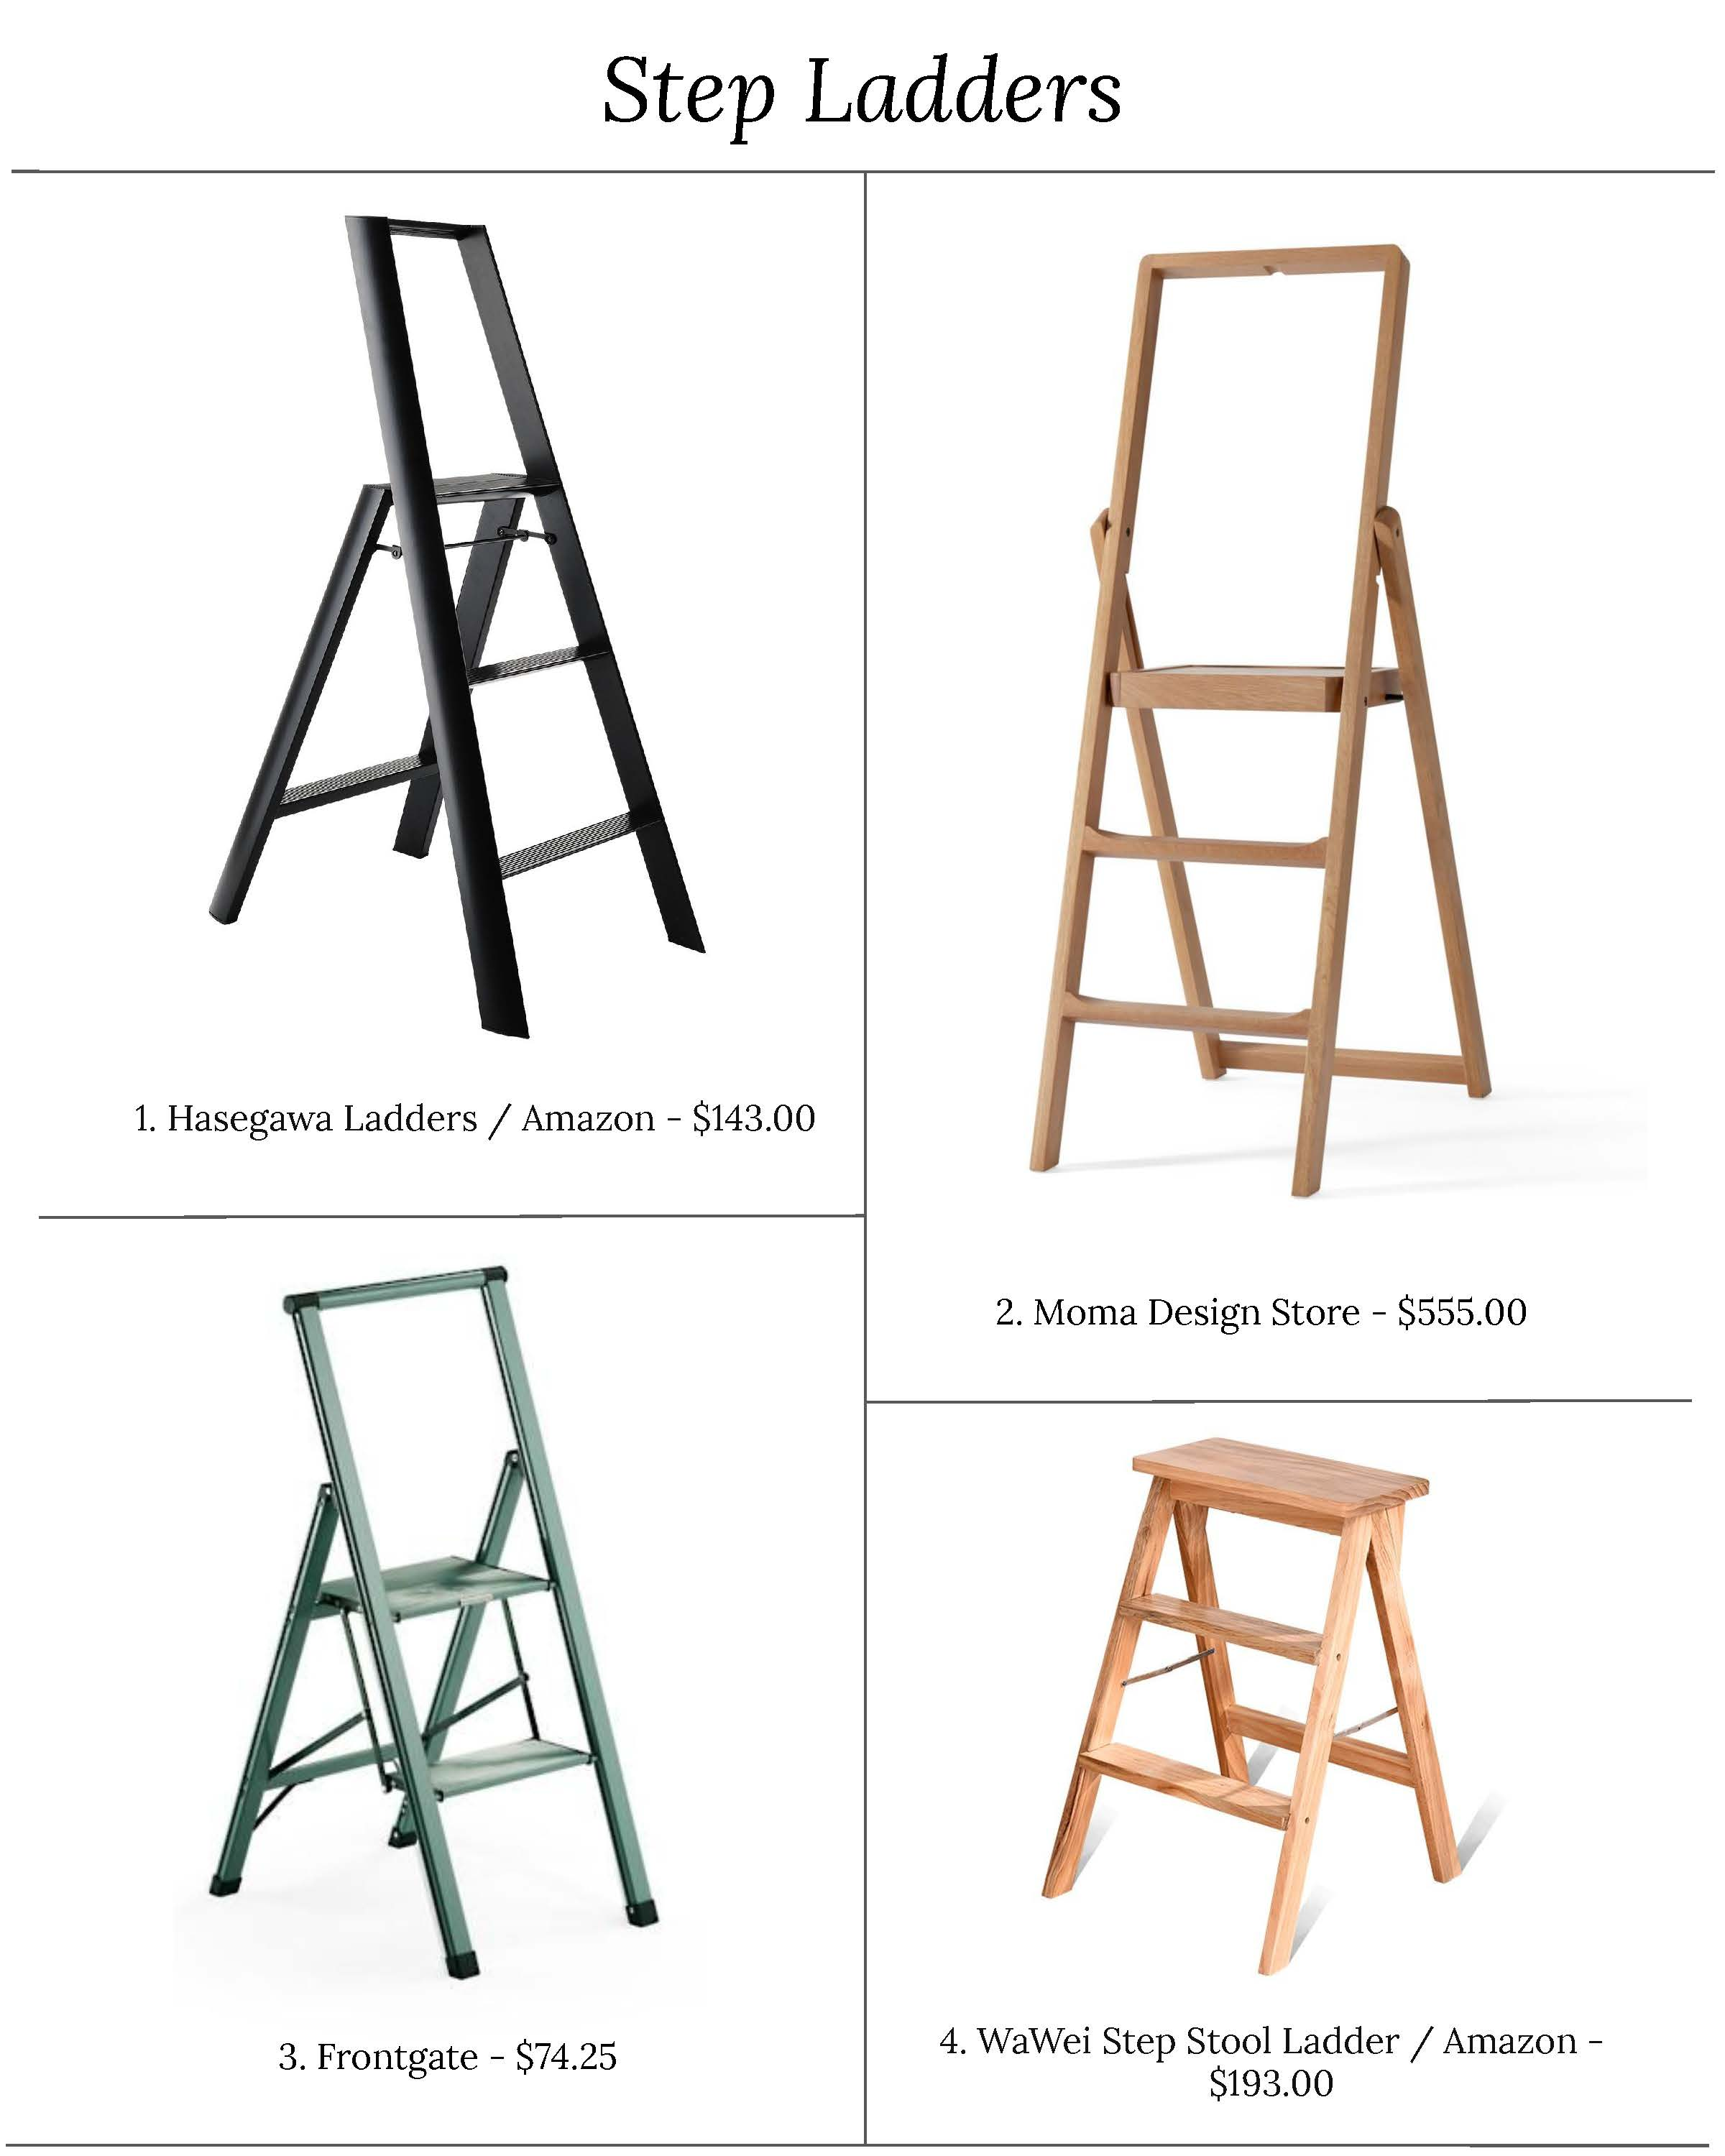 Kitchen Tools_Step_Ladders_LaurenLCaron.jpg